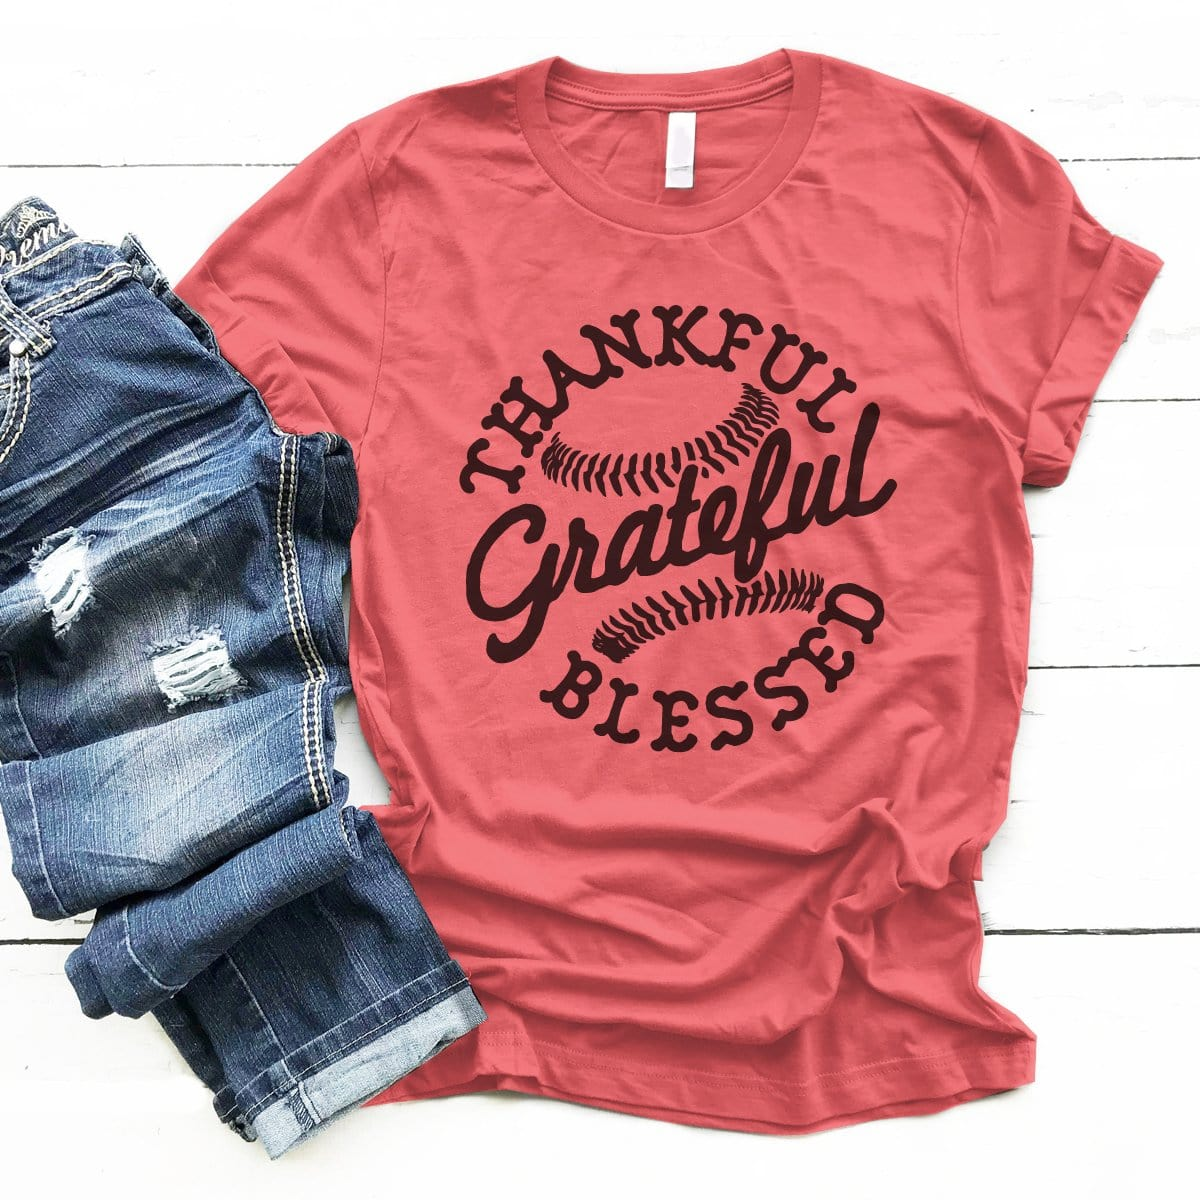 Thankful Grateful Blessed - Premium Unisex T-Shirt